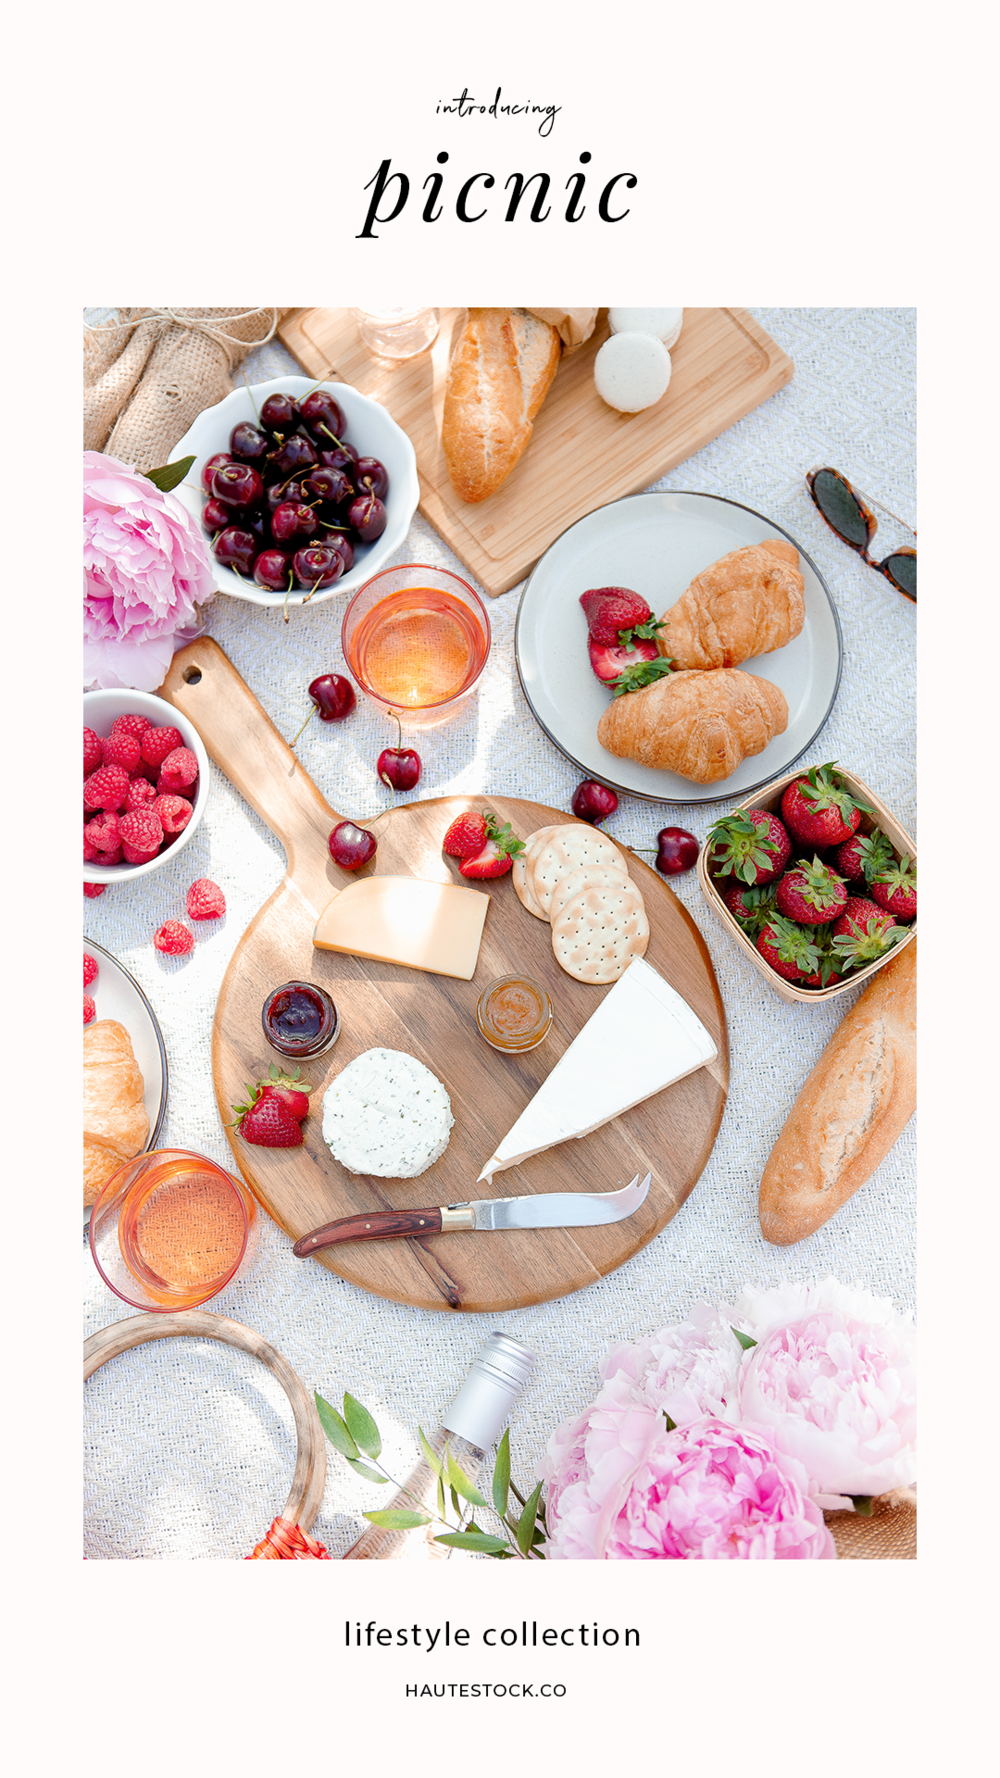 Haute Stock's lifestyle photos are perfect for bloggers, women business owners and creative entrepreneurs. The Picnic Collection features vintage inspired summertime vibes. Haute Stock Members get access to the entire collection. Click for the full preview!